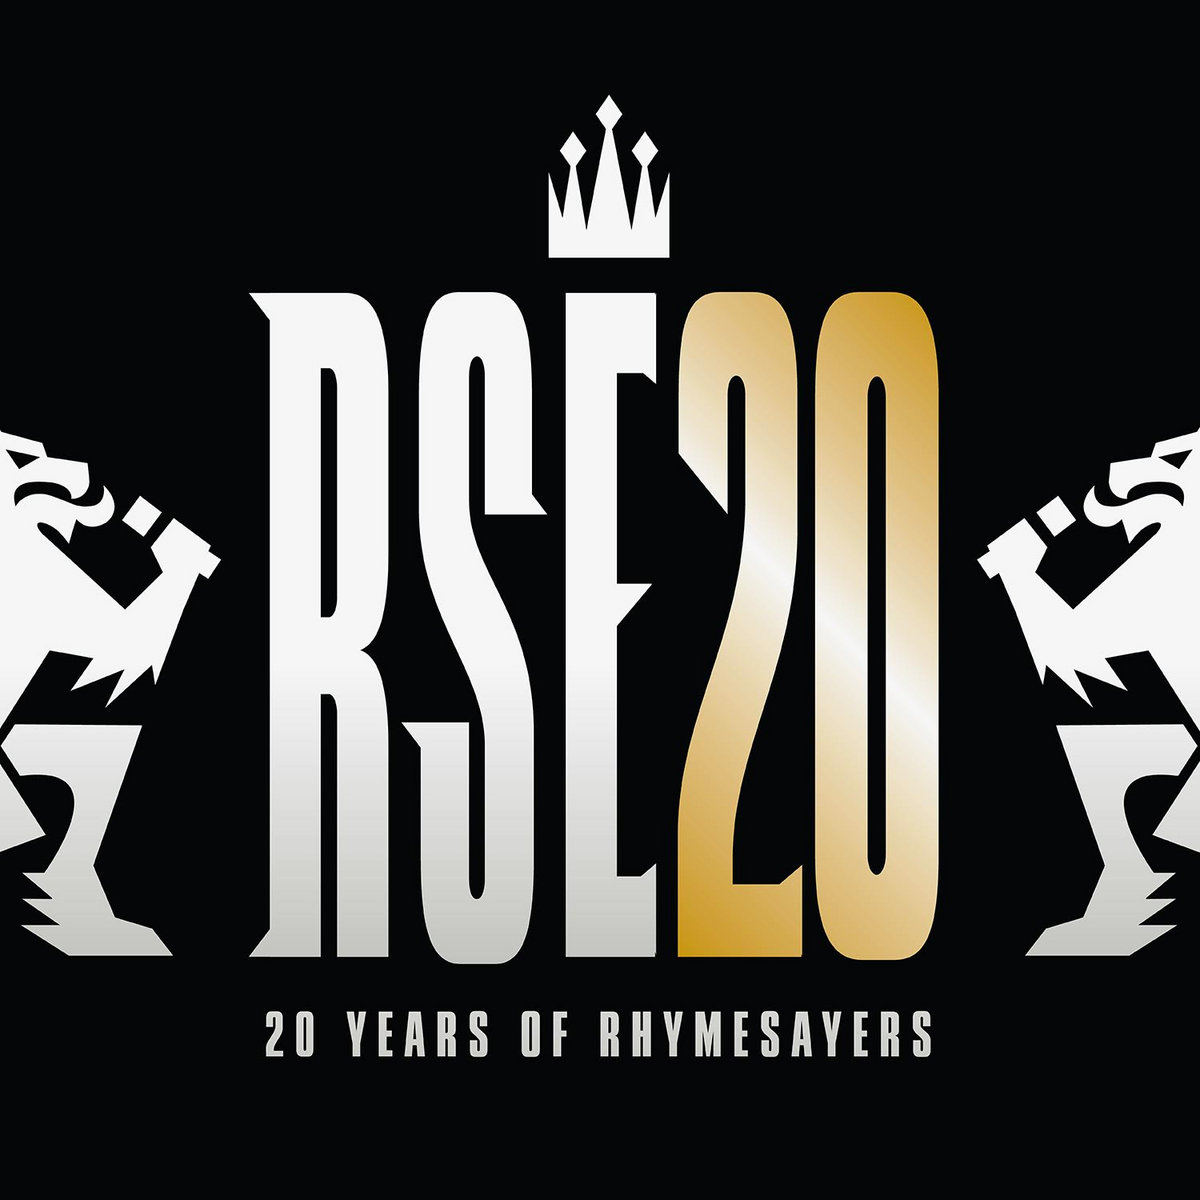 Radio inactive rhymesayers entertainment from rse20 20 years of rhymesayers entertainment by rhymesayers entertainment malvernweather Images